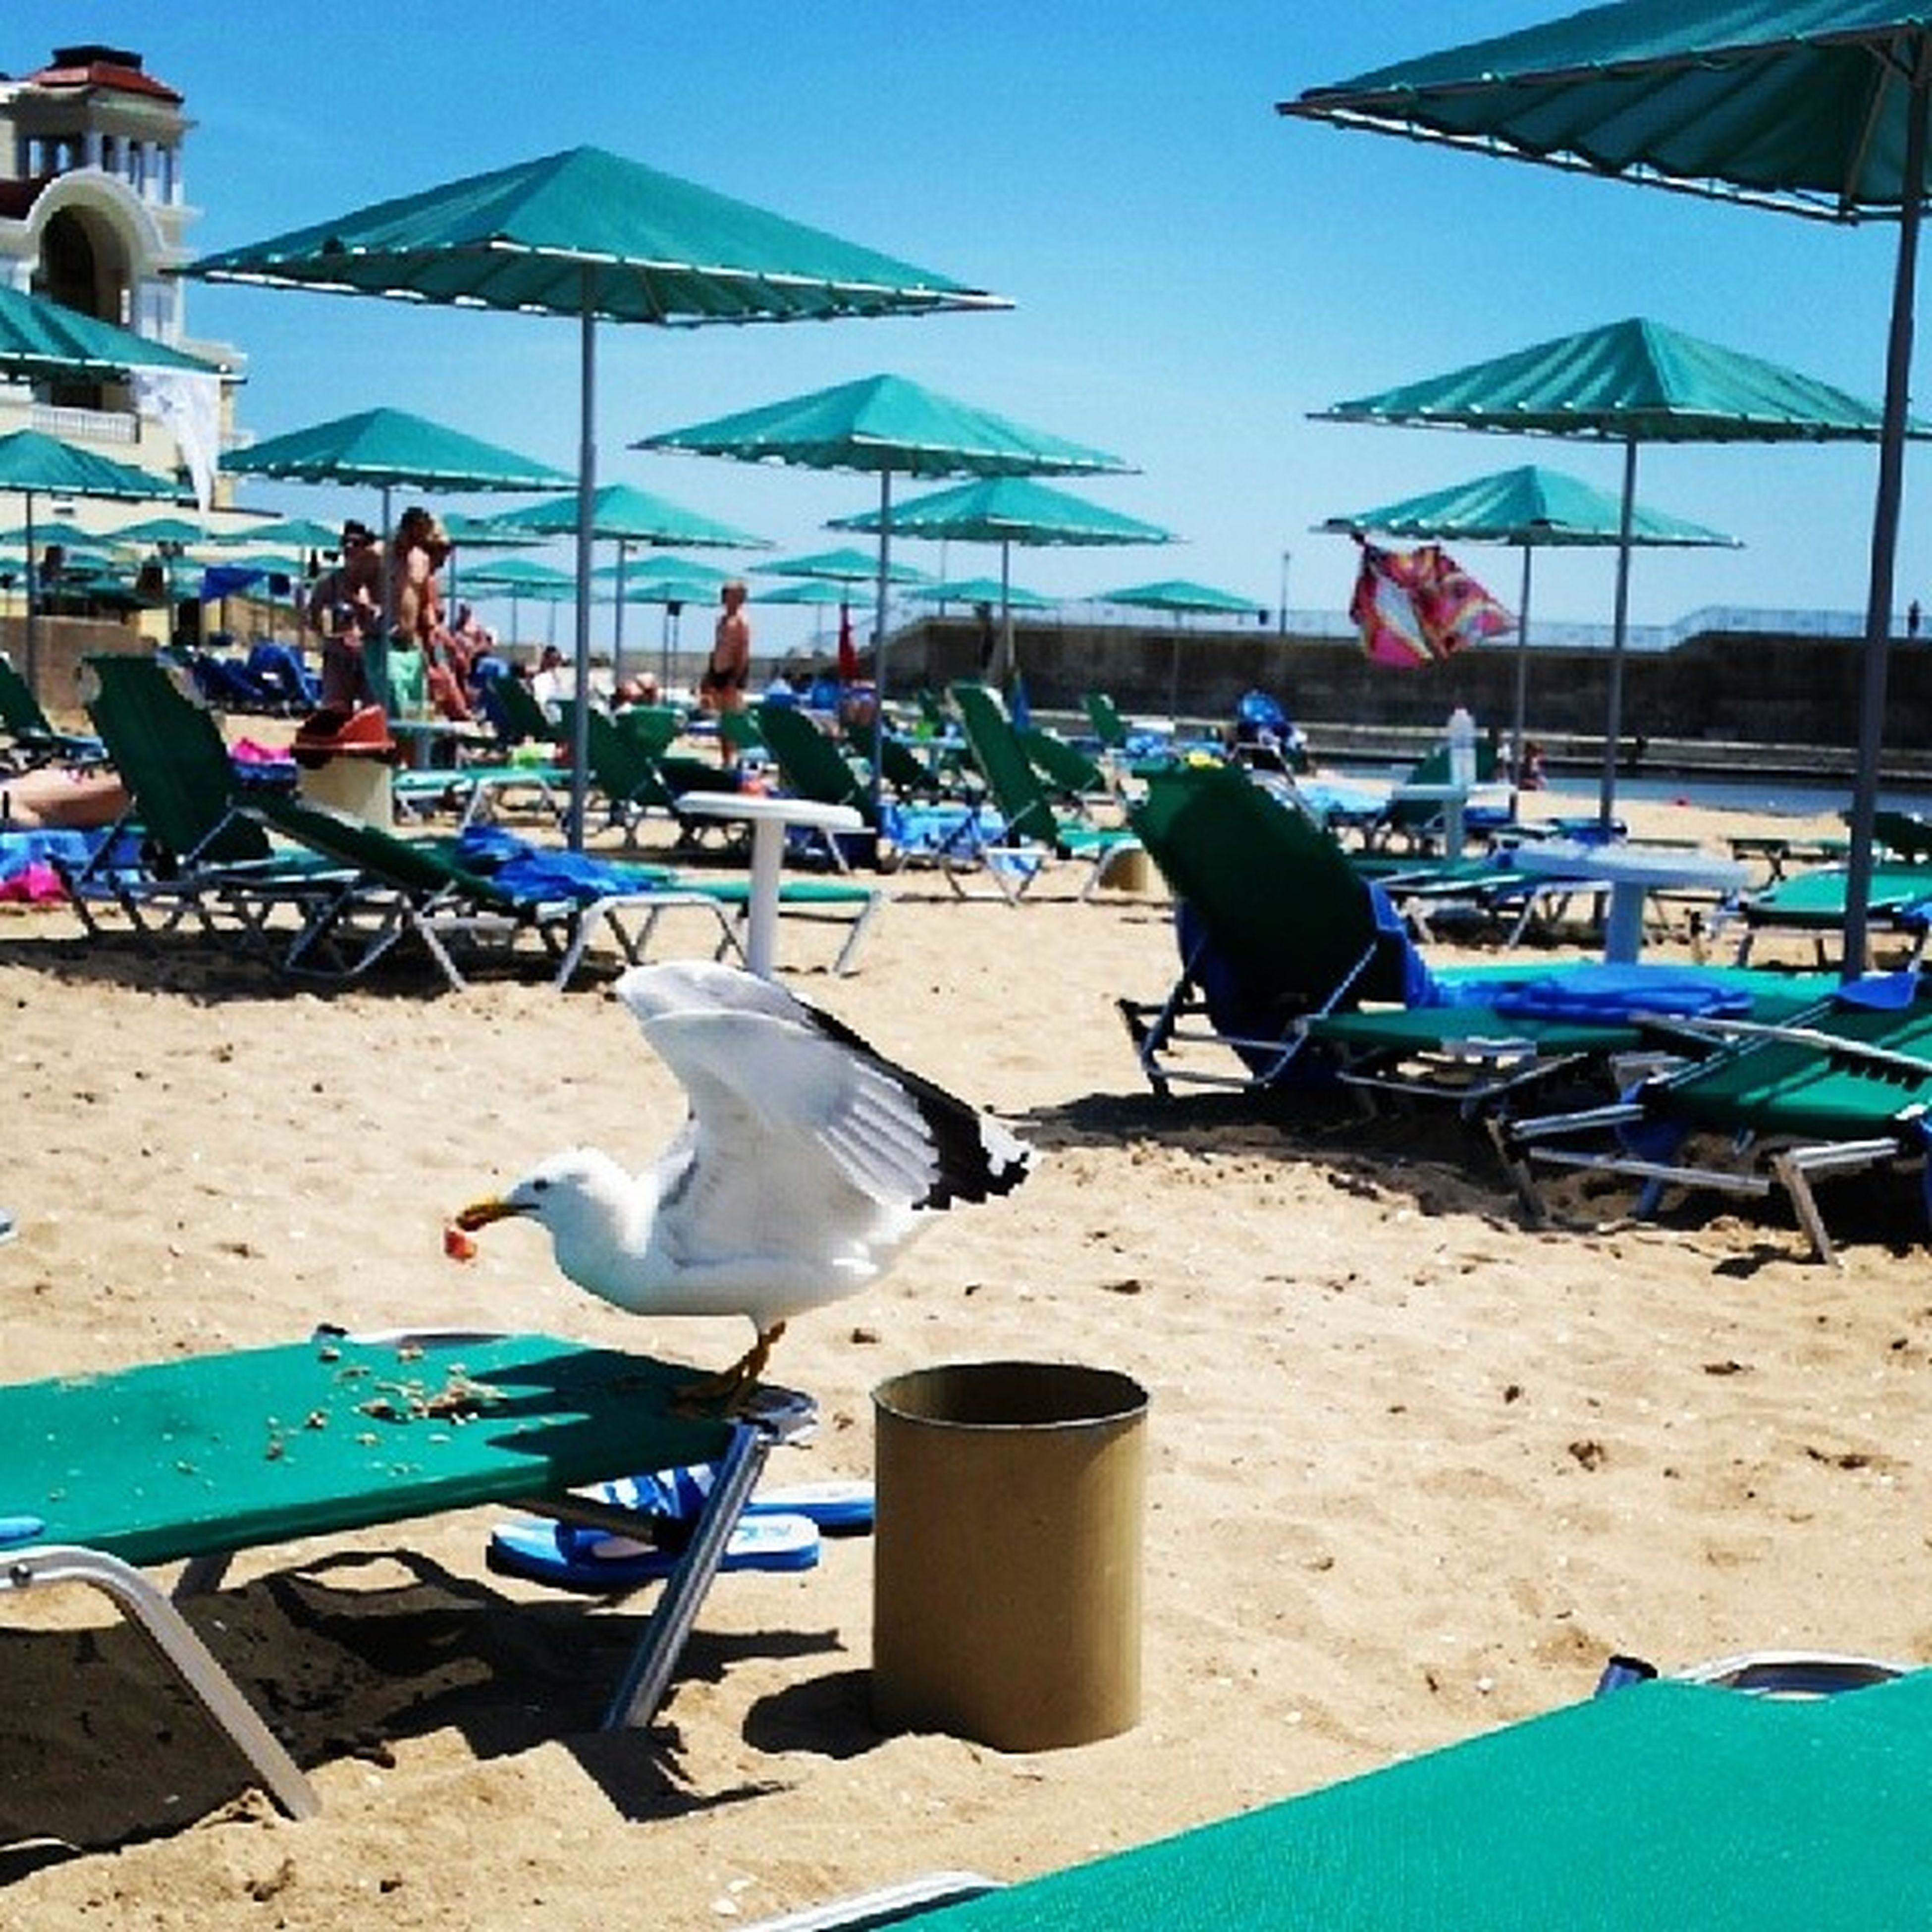 beach, sand, sea, shore, sunlight, relaxation, chair, men, blue, water, moored, lounge chair, day, person, beach umbrella, vacations, incidental people, summer, parasol